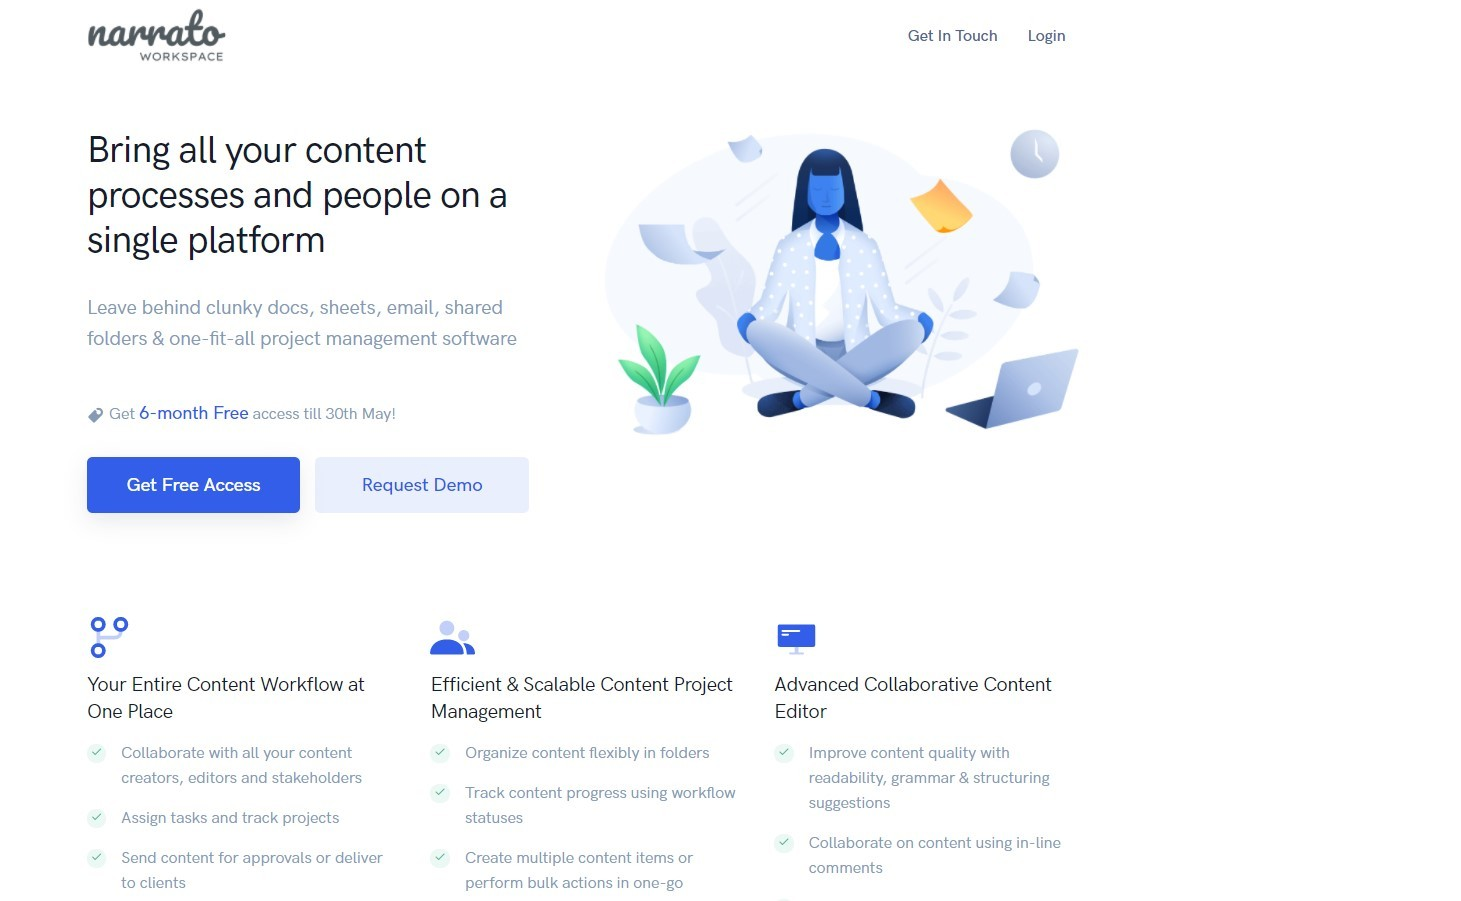 Landing page example by Narrato